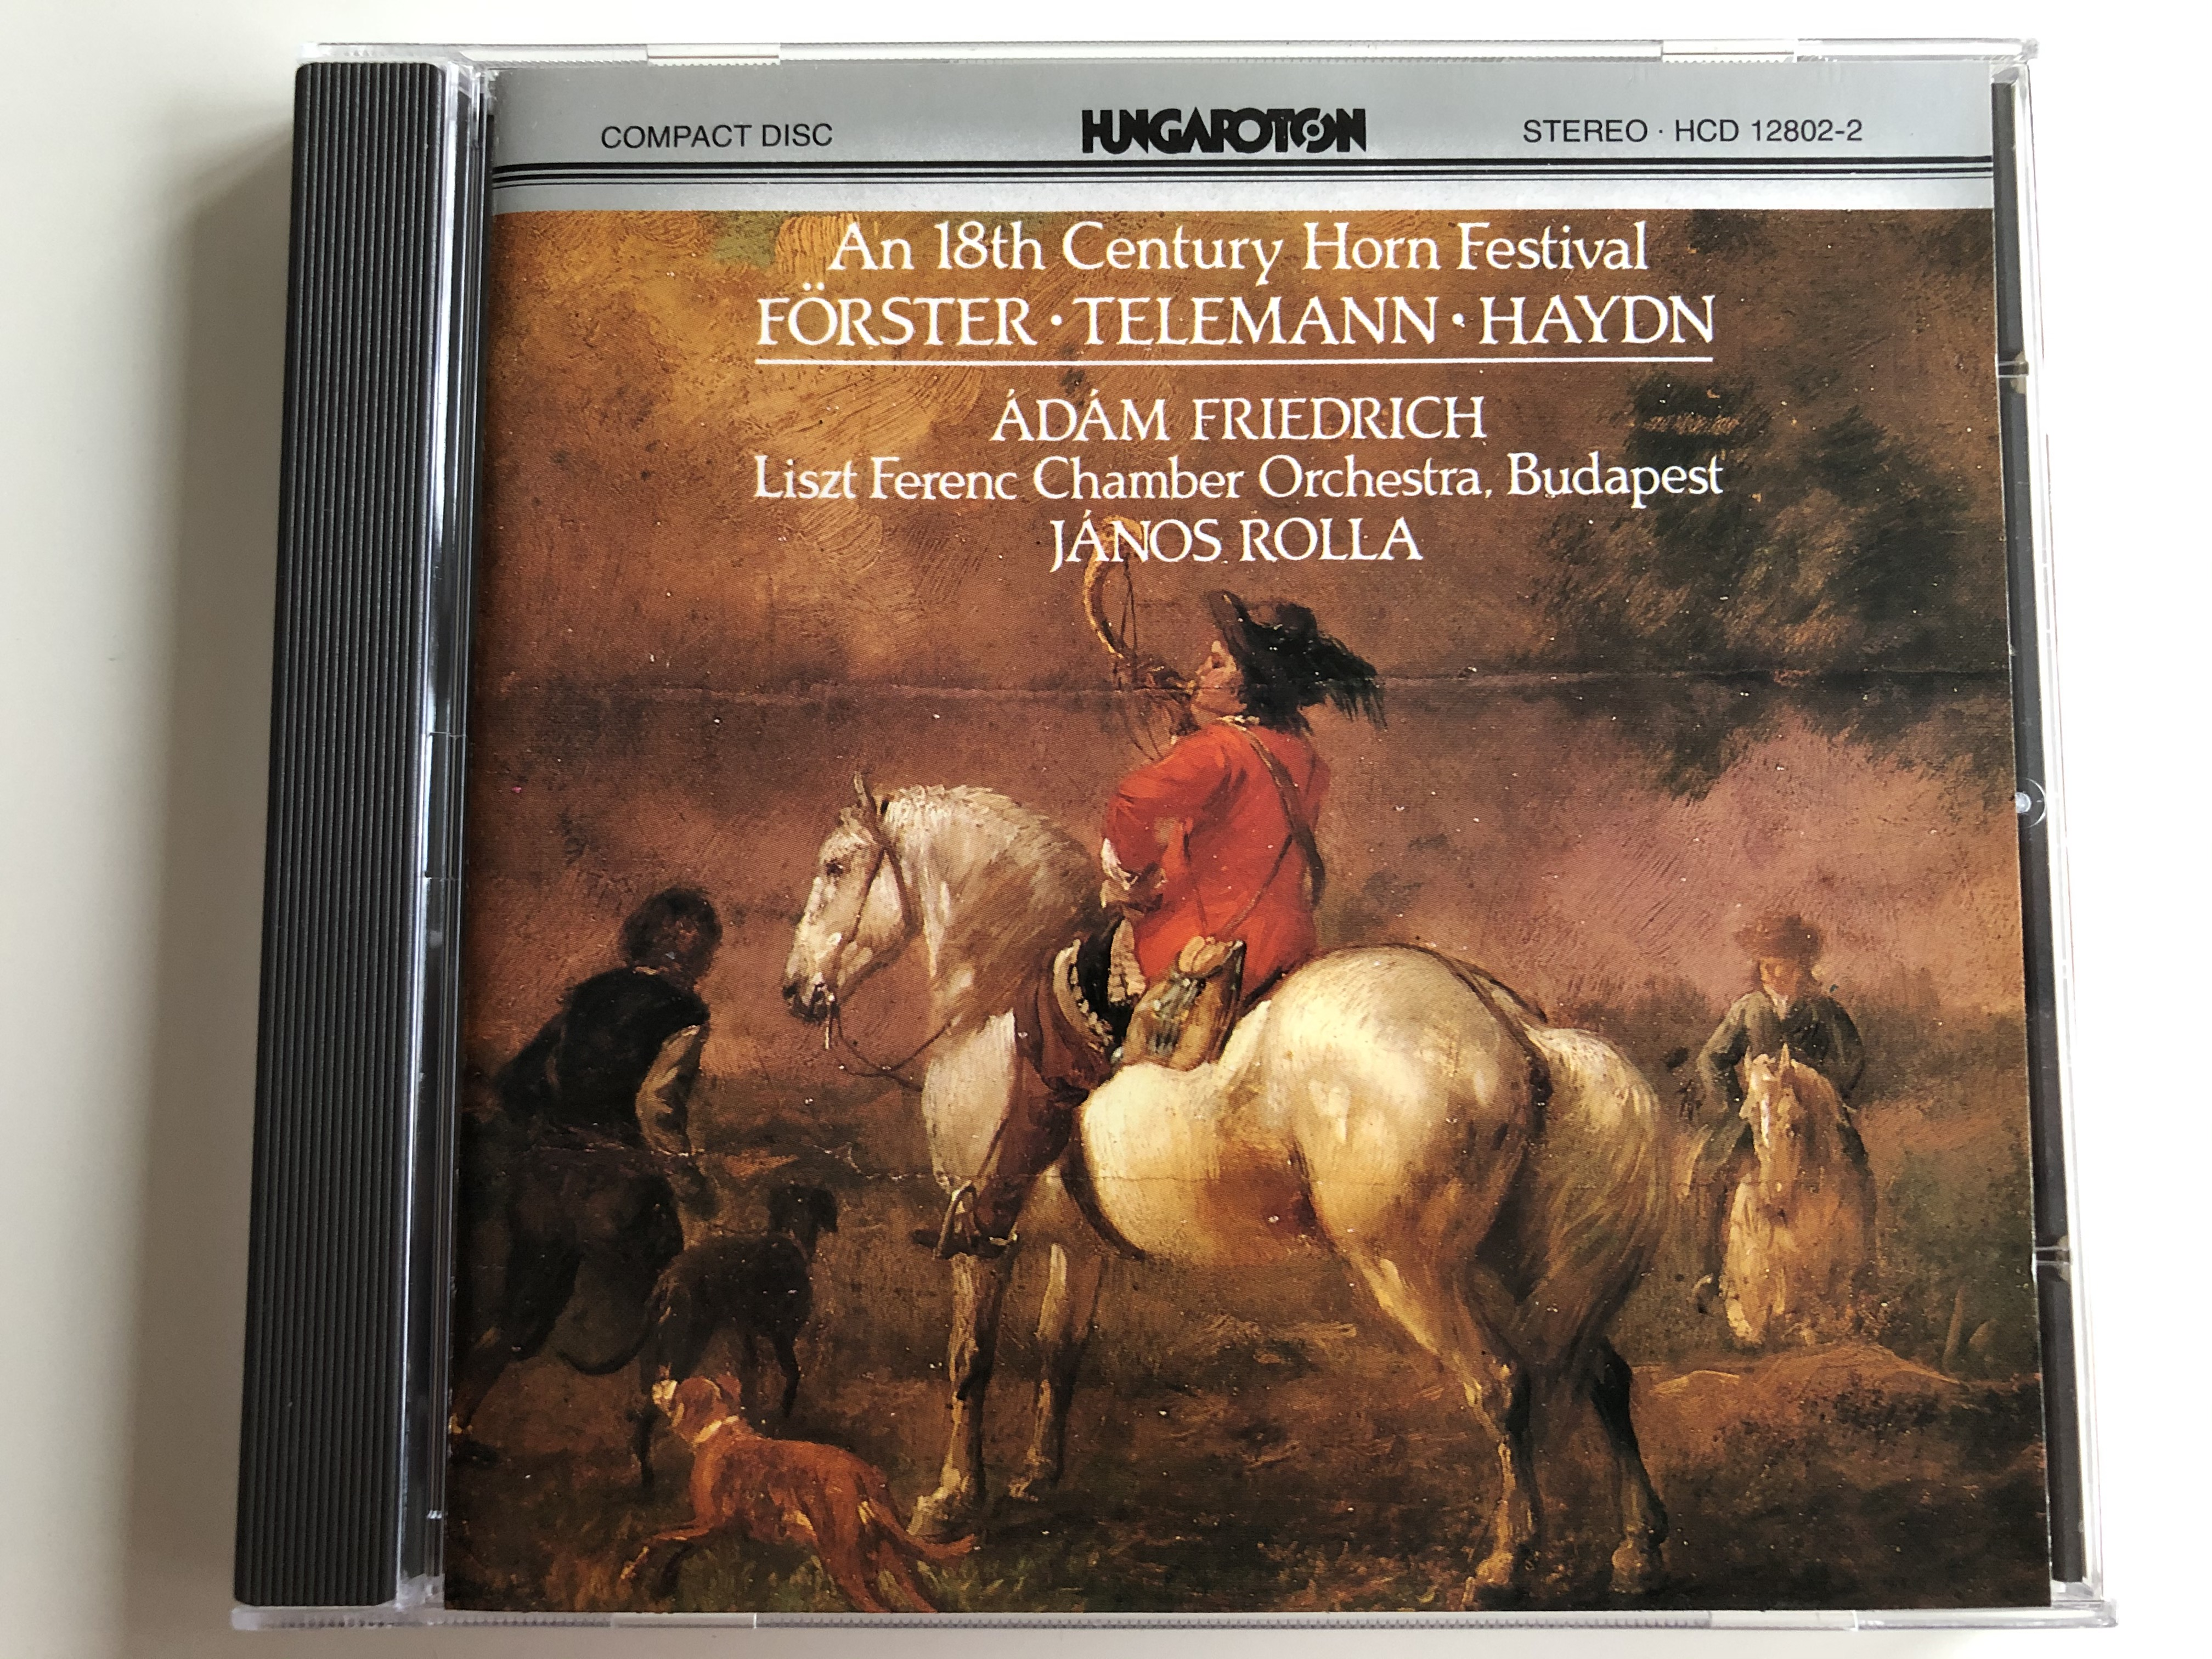 an-18th-century-horn-festival-forster-telemann-haydn-adam-friedrich-liszt-ferenc-chamber-orchestra-budapest-janos-rolla-hungaroton-audio-cd-stereo-hcd-12802-2-1-.jpg